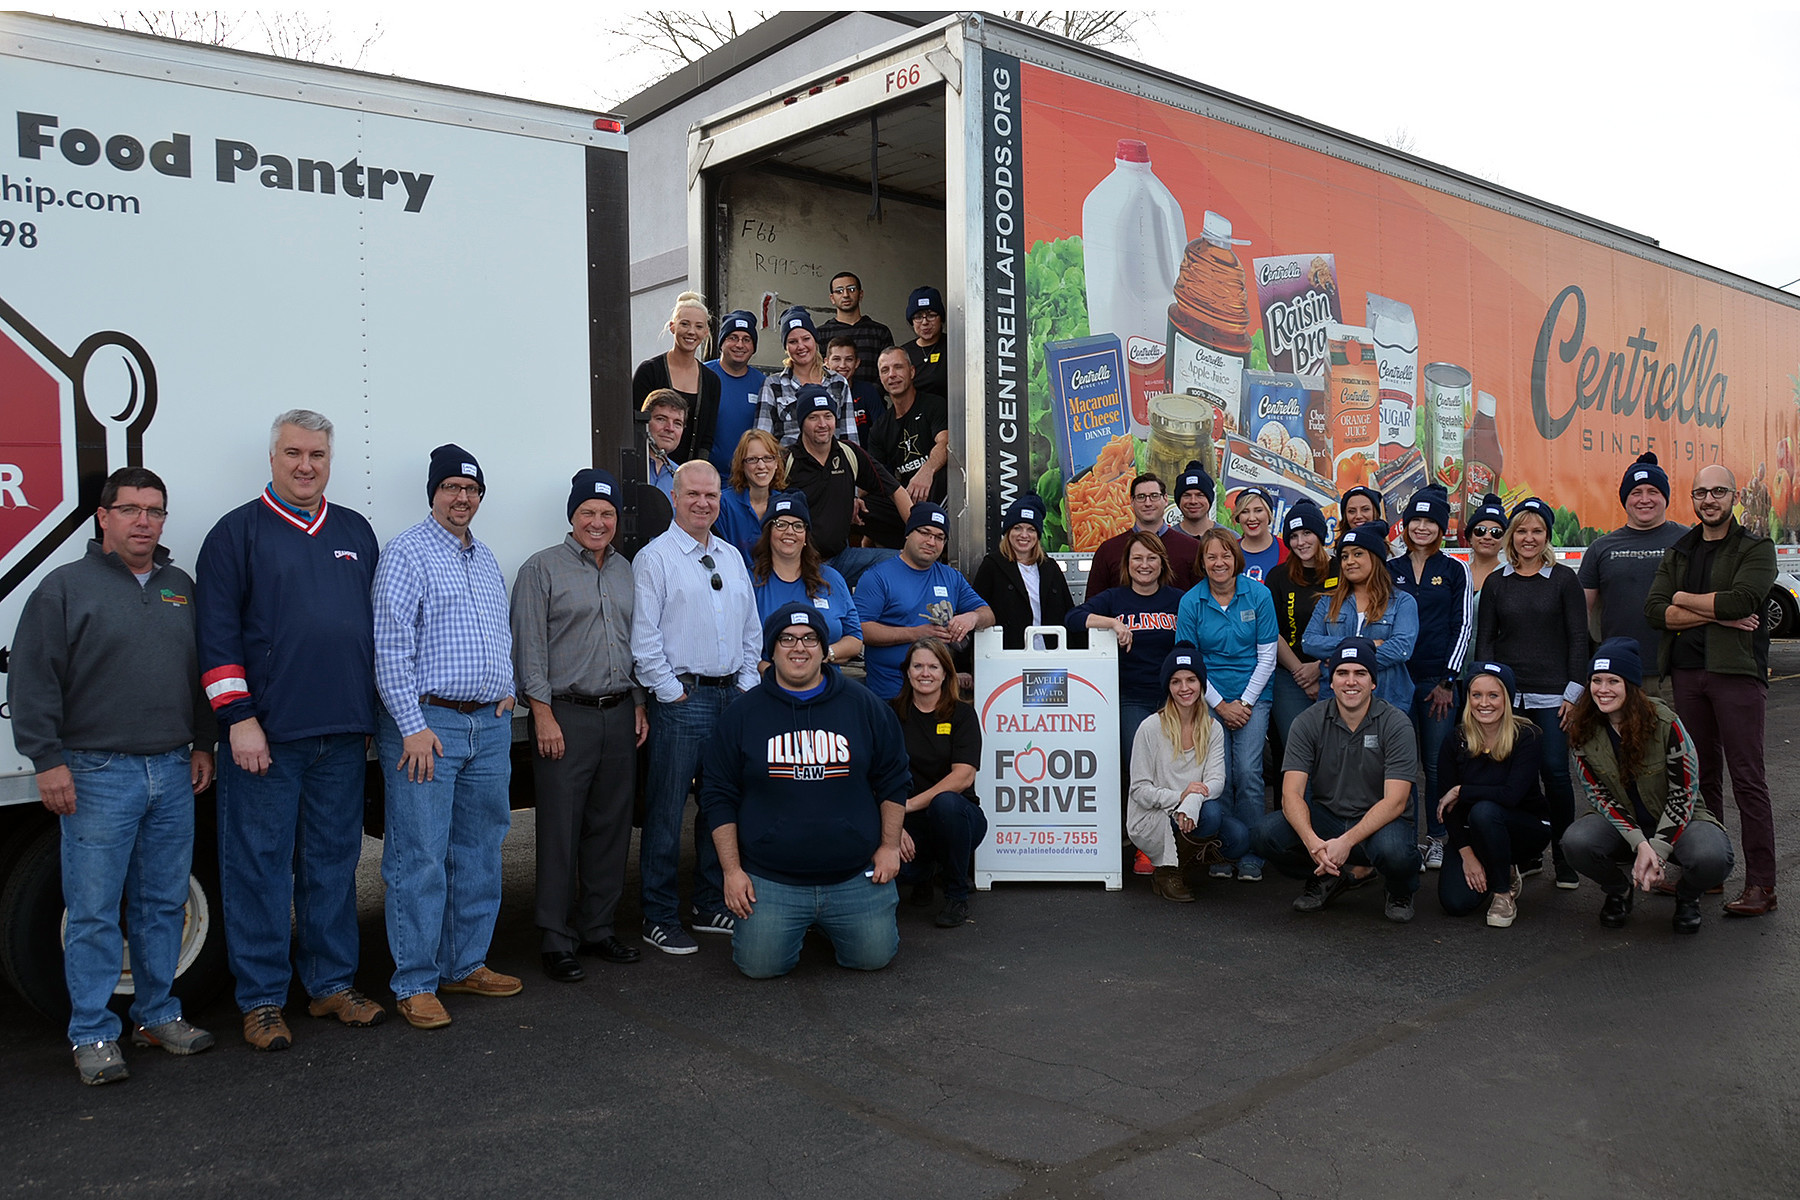 lavelle law thanks contributors to palatine food drive